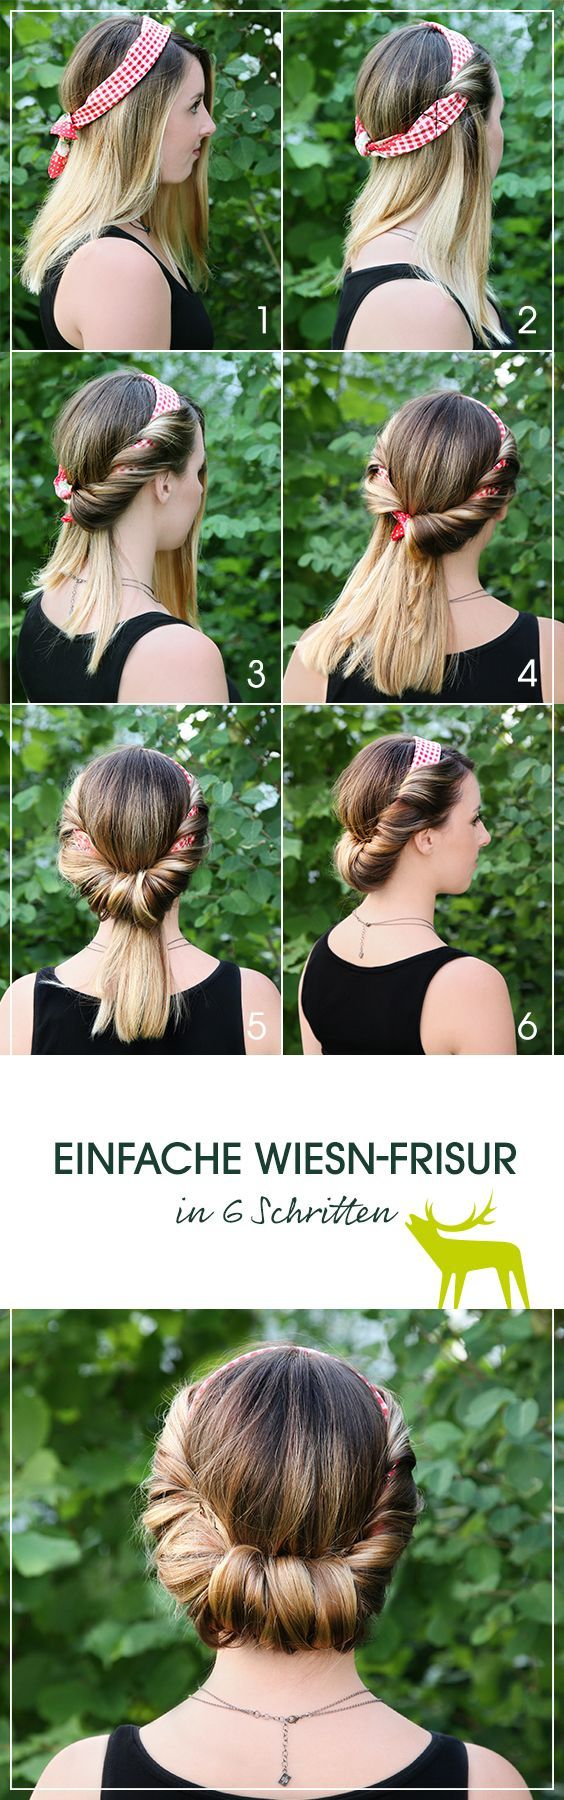 Step-by-step instructions for a simple and stylish Oktoberfest hairstyle. The sophisticated silk scarf with check pattern by Reitmayer makes it an eye-catcher